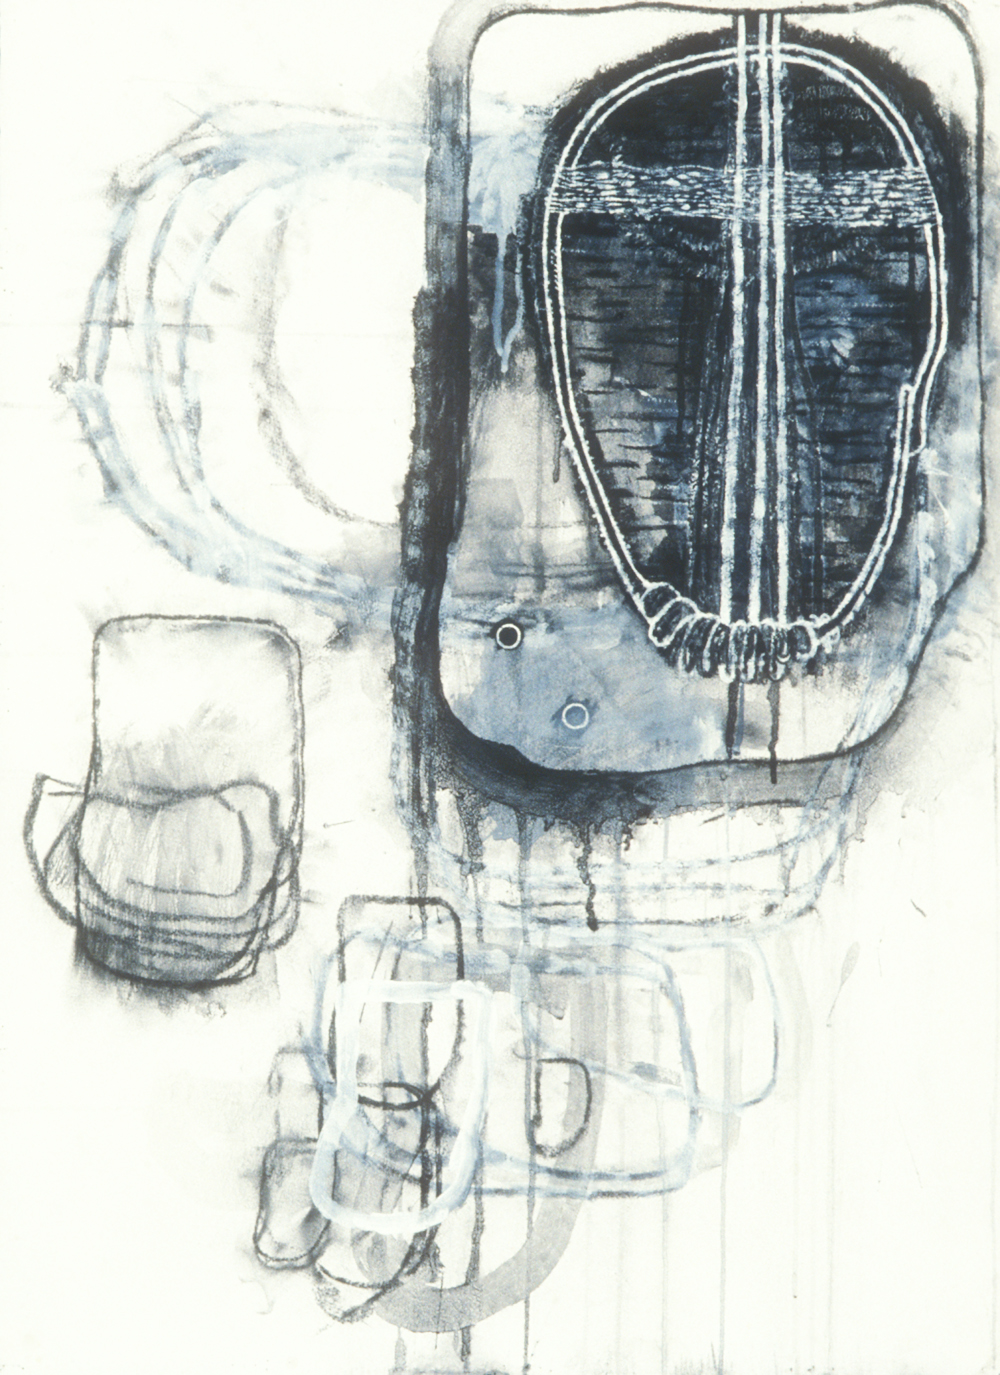 Elemental 8  , 1989, mixed media on paper, 29.5 x 21.5 in.